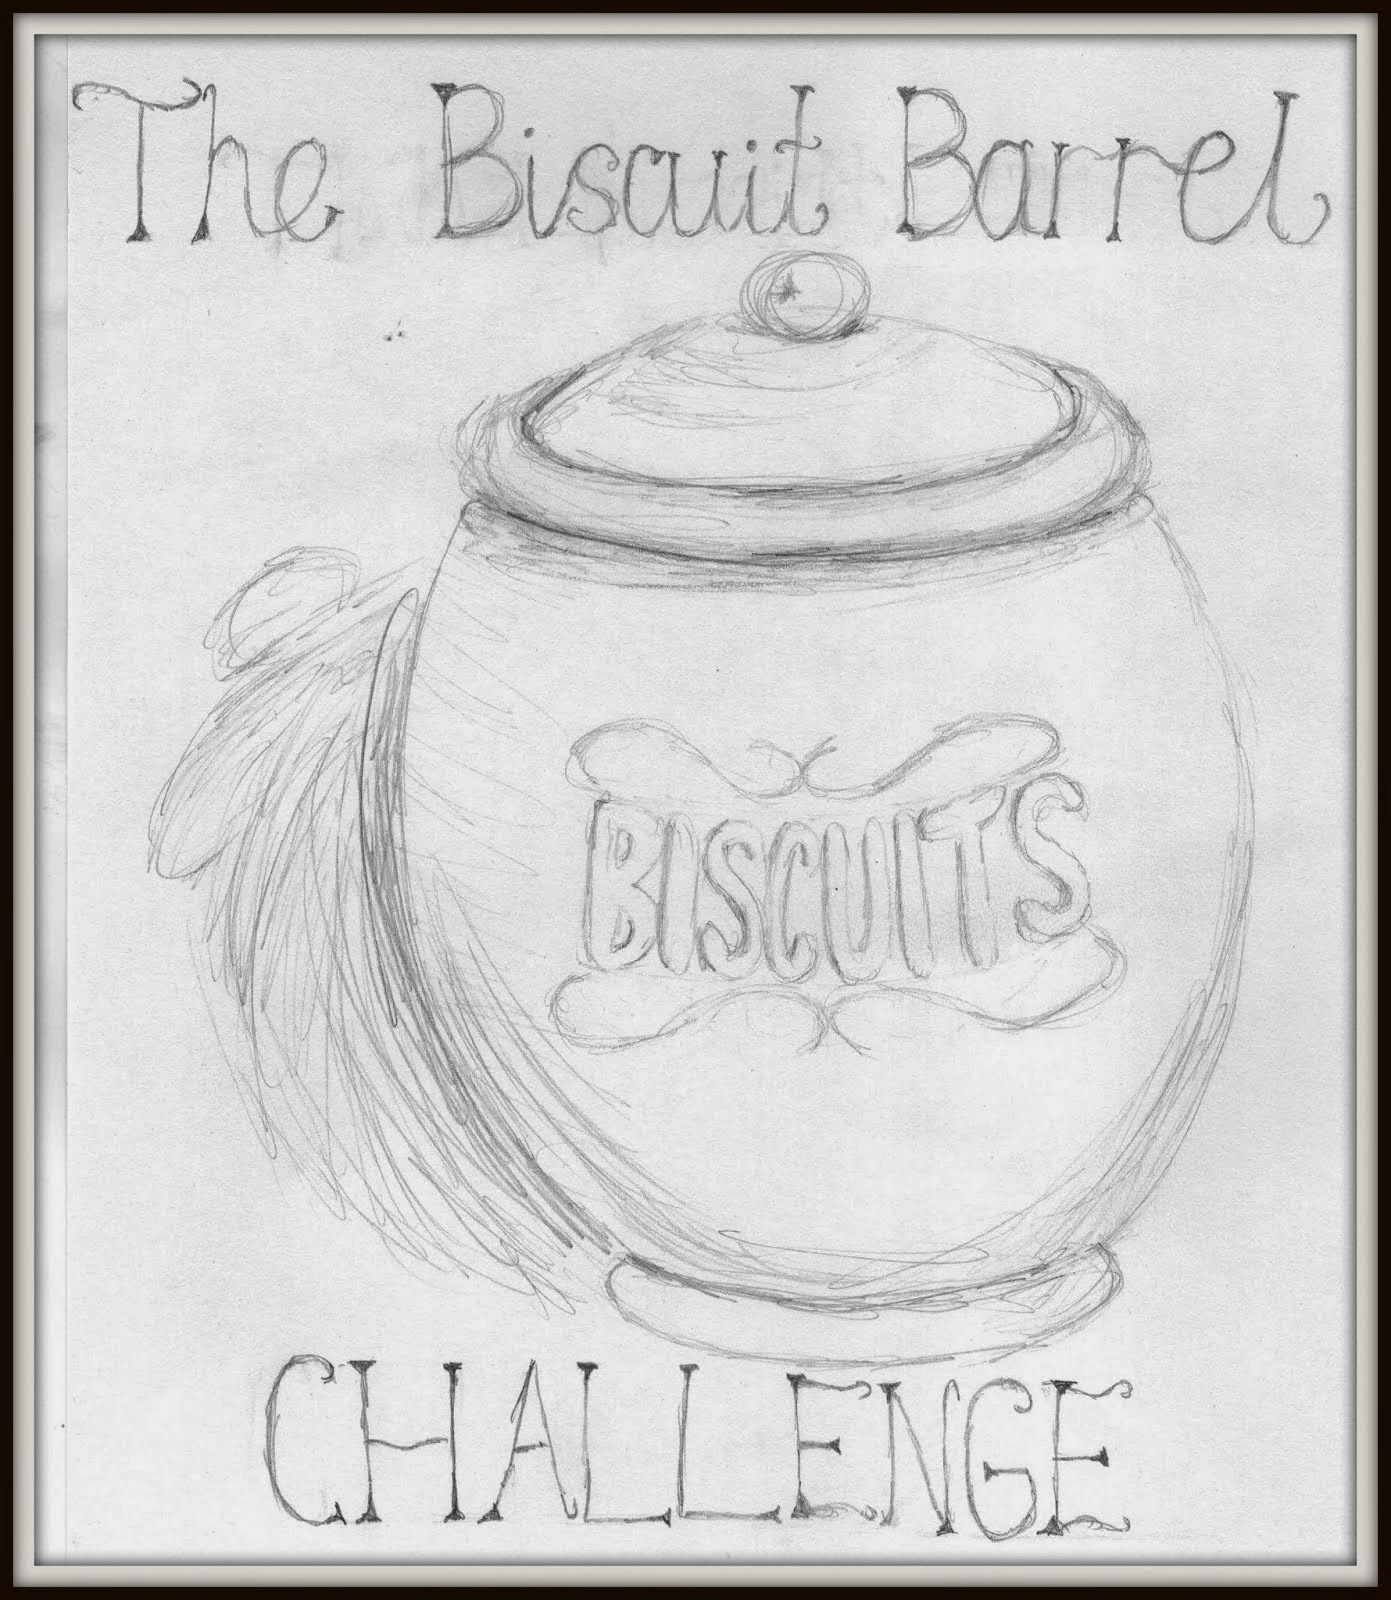 Biscuit Barrel May 14 Round Up